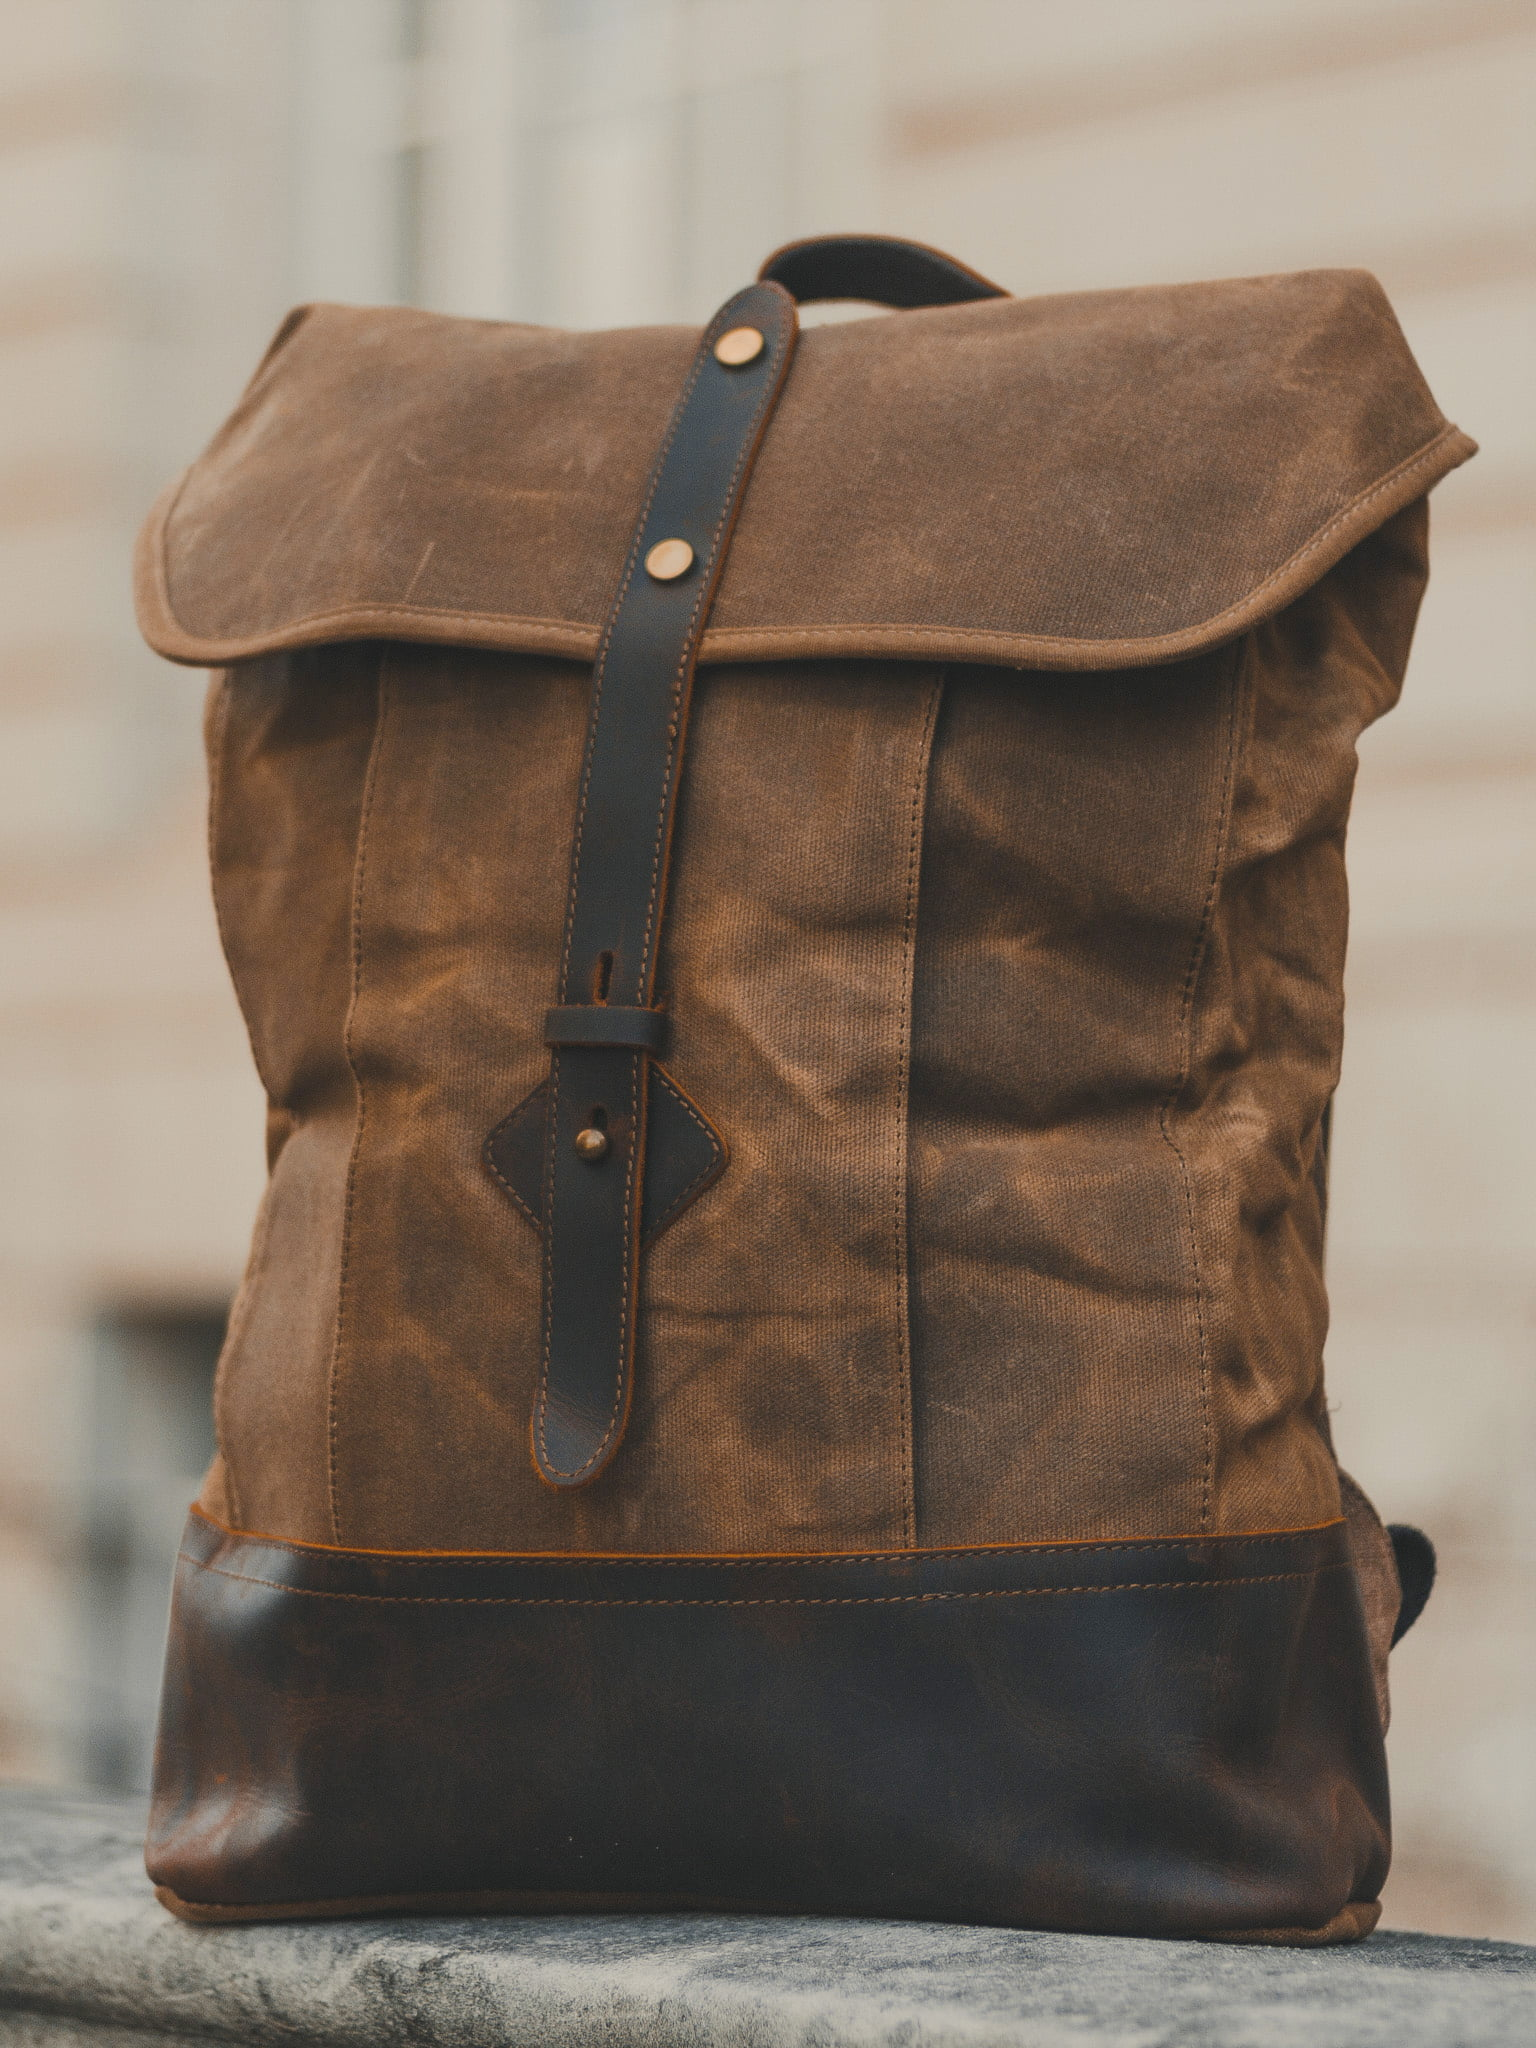 Waxed Cotton Canvas and Leather Backpack Rucksack - Menswear Denim Rugged Style Outfit - The Kingston in Sandstone by Oldfield